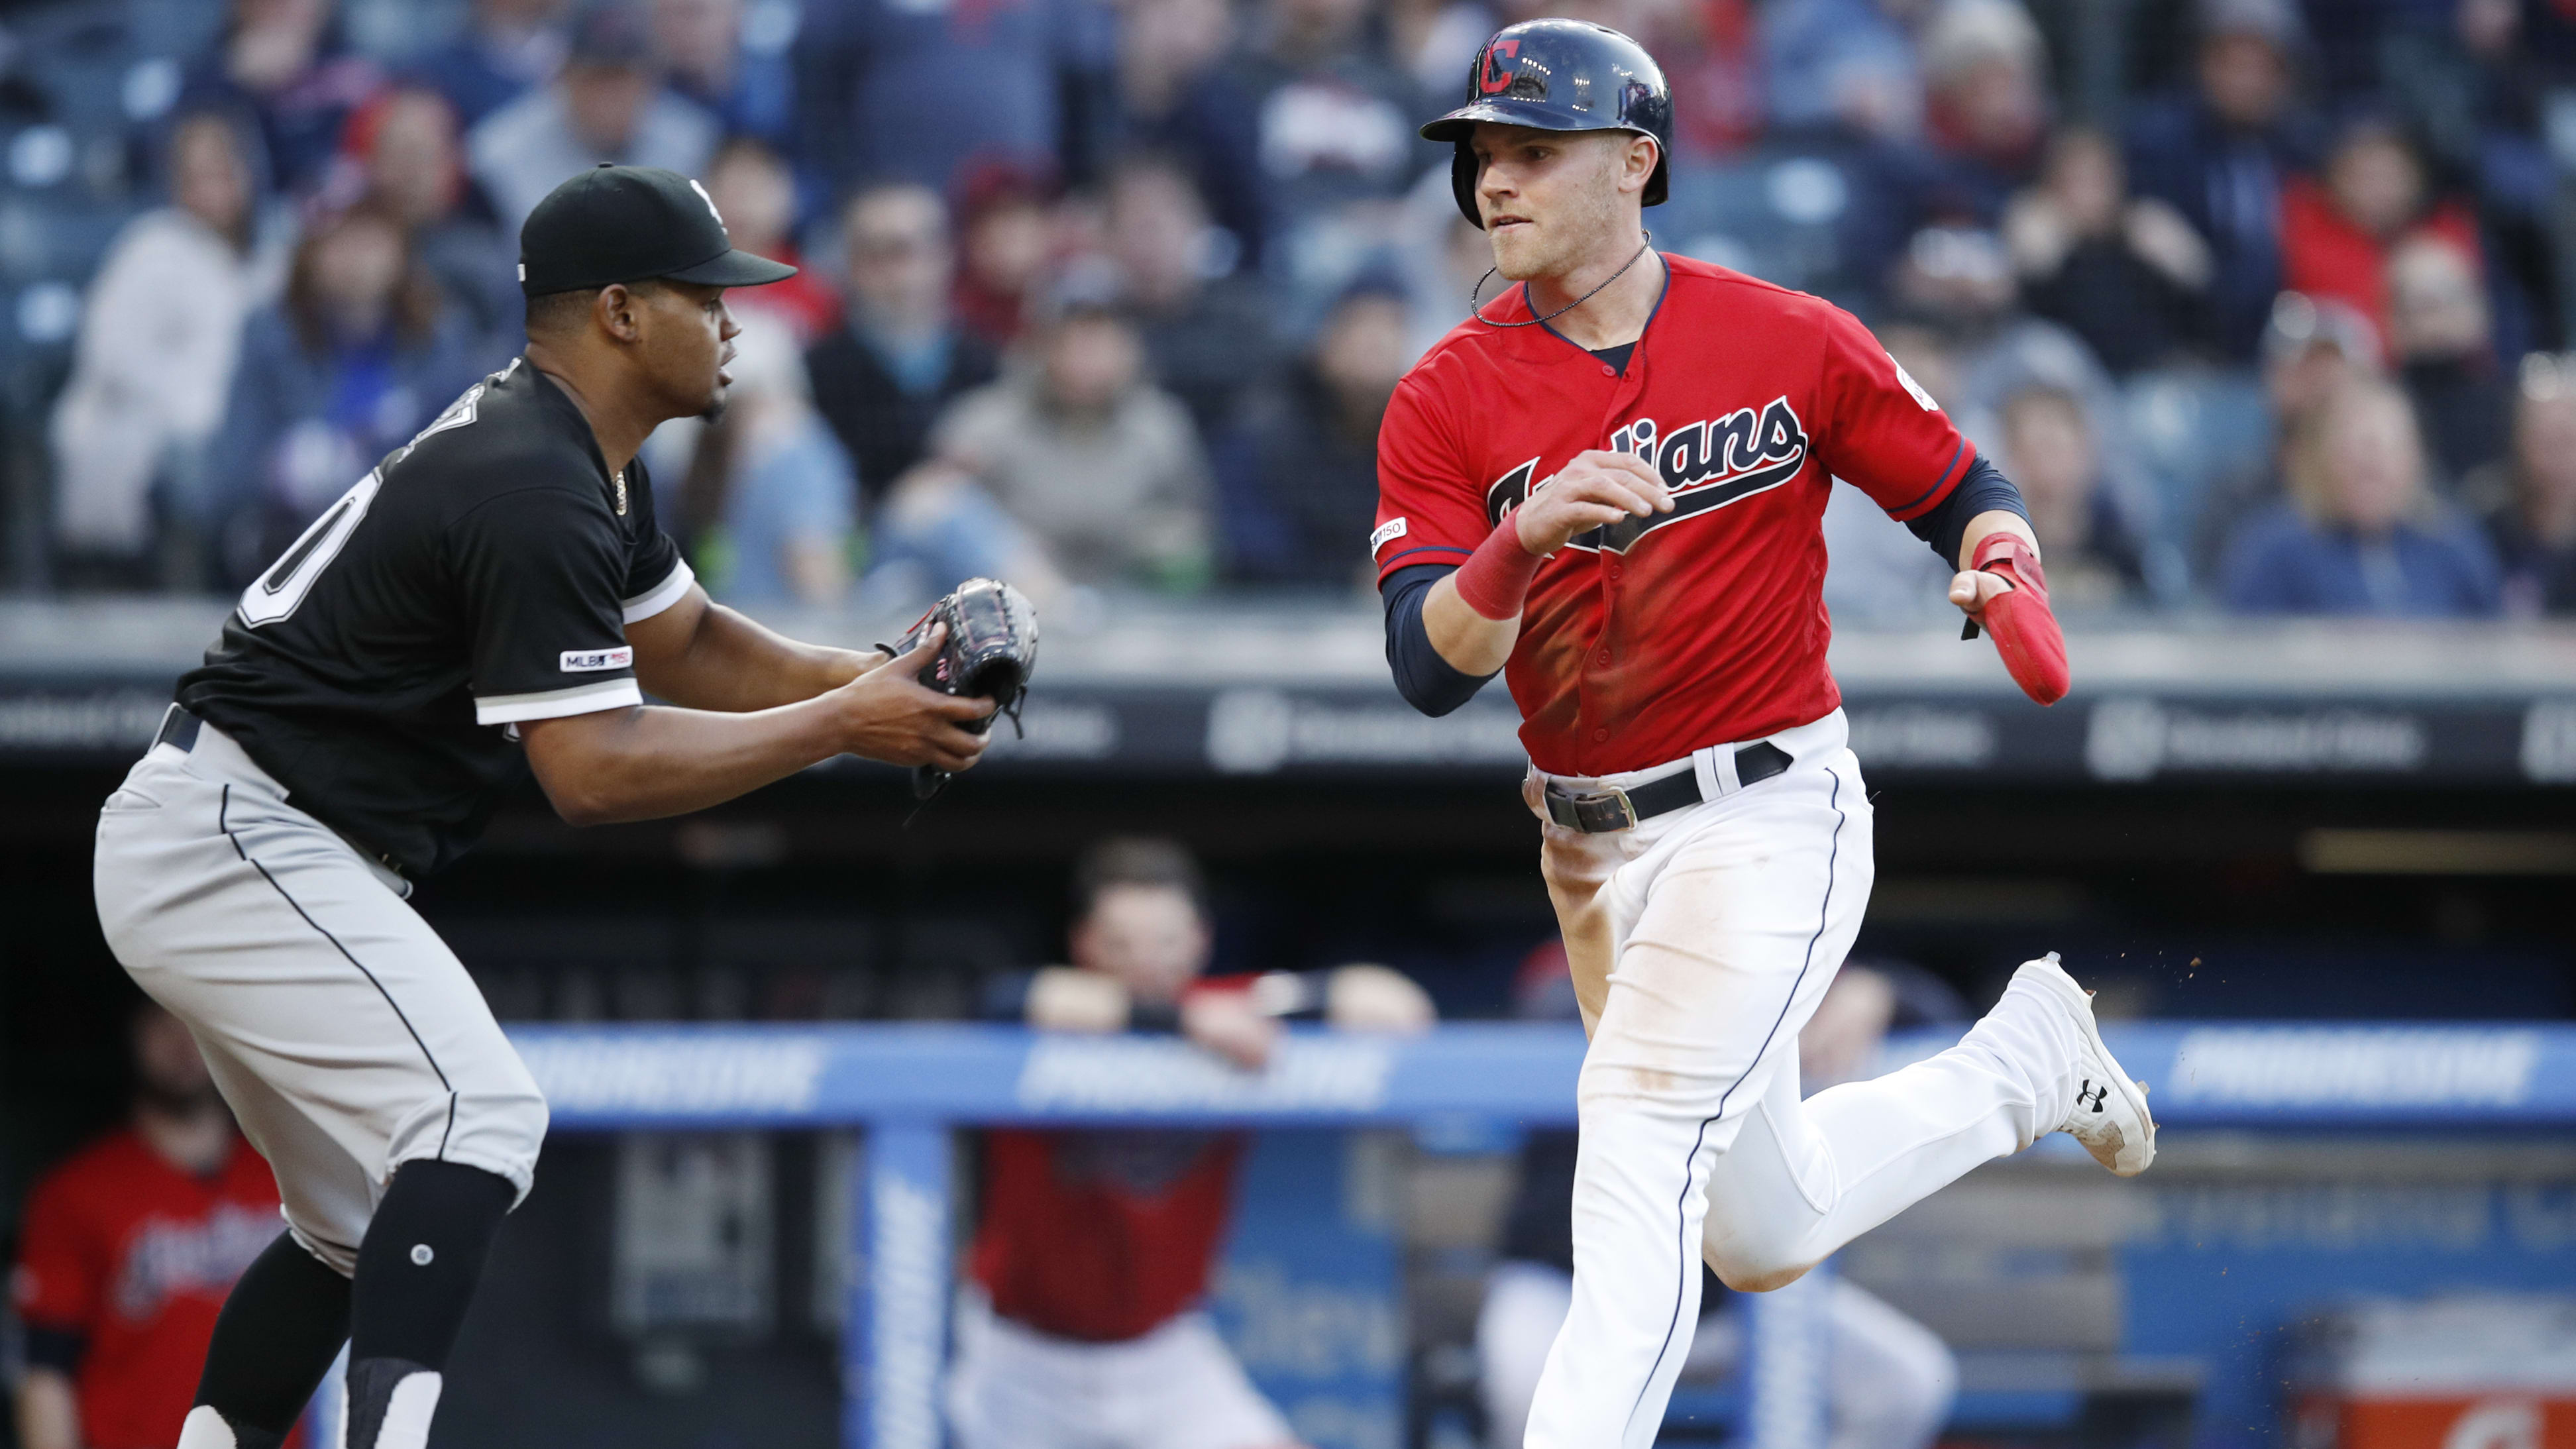 CLEVELAND, OH - MAY 08: Jake Bauers #10 of the Cleveland Indians gets tagged out trying to score in the sixth inning by Reynaldo Lopez #40 of the Chicago White Sox at Progressive Field on May 8, 2019 in Cleveland, Ohio. The Indians won 5-3. (Photo by Joe Robbins/Getty Images)